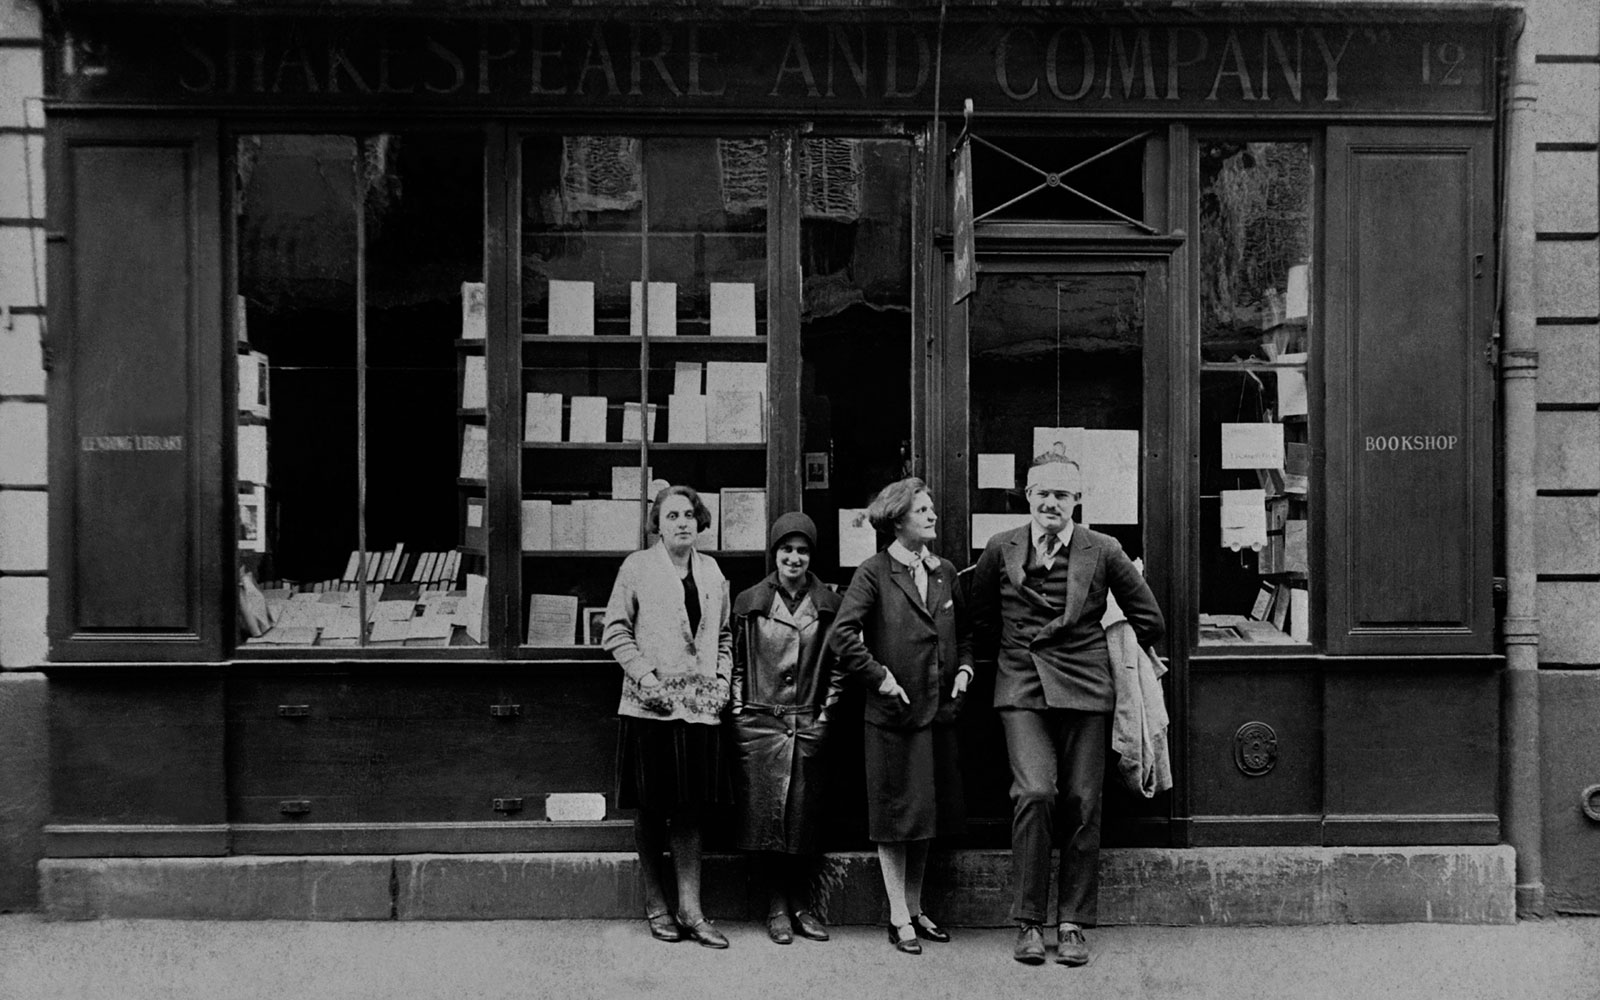 The_Ink_Collective_Inside_Ink_Pret_A_Partir_See_Shakespear_and_Company_2.jpg